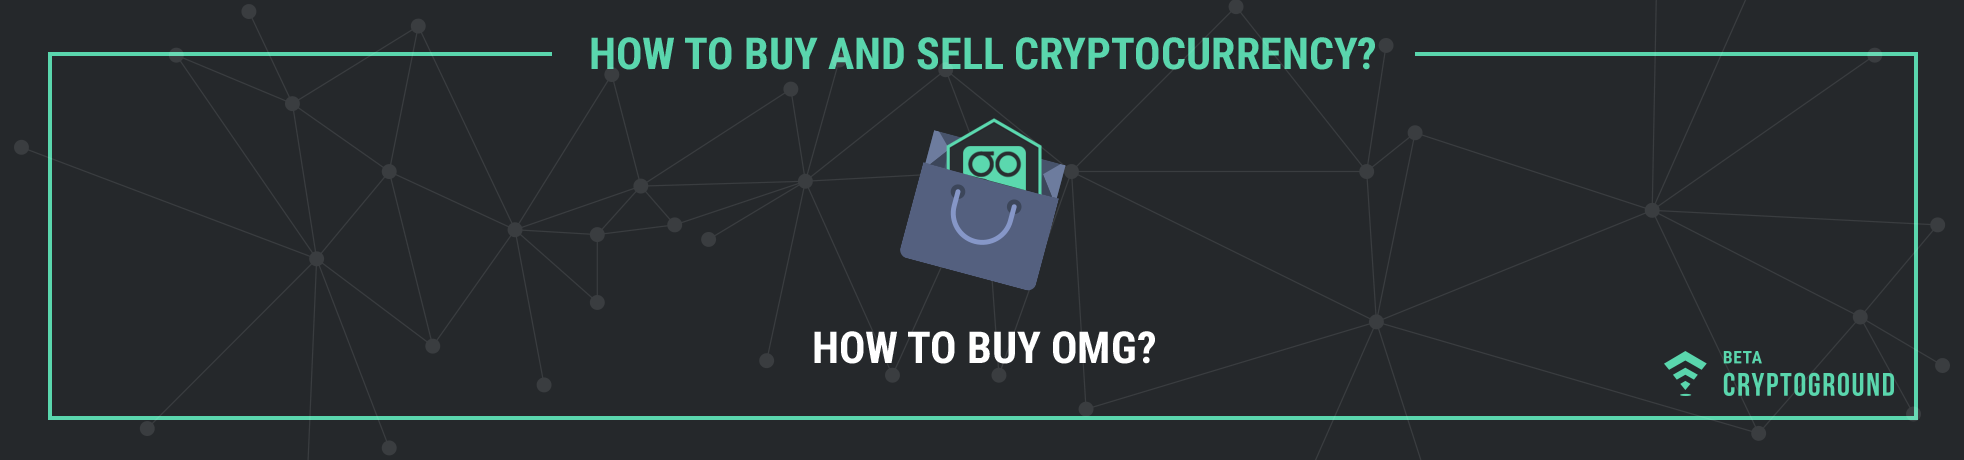 How to Buy OMG?